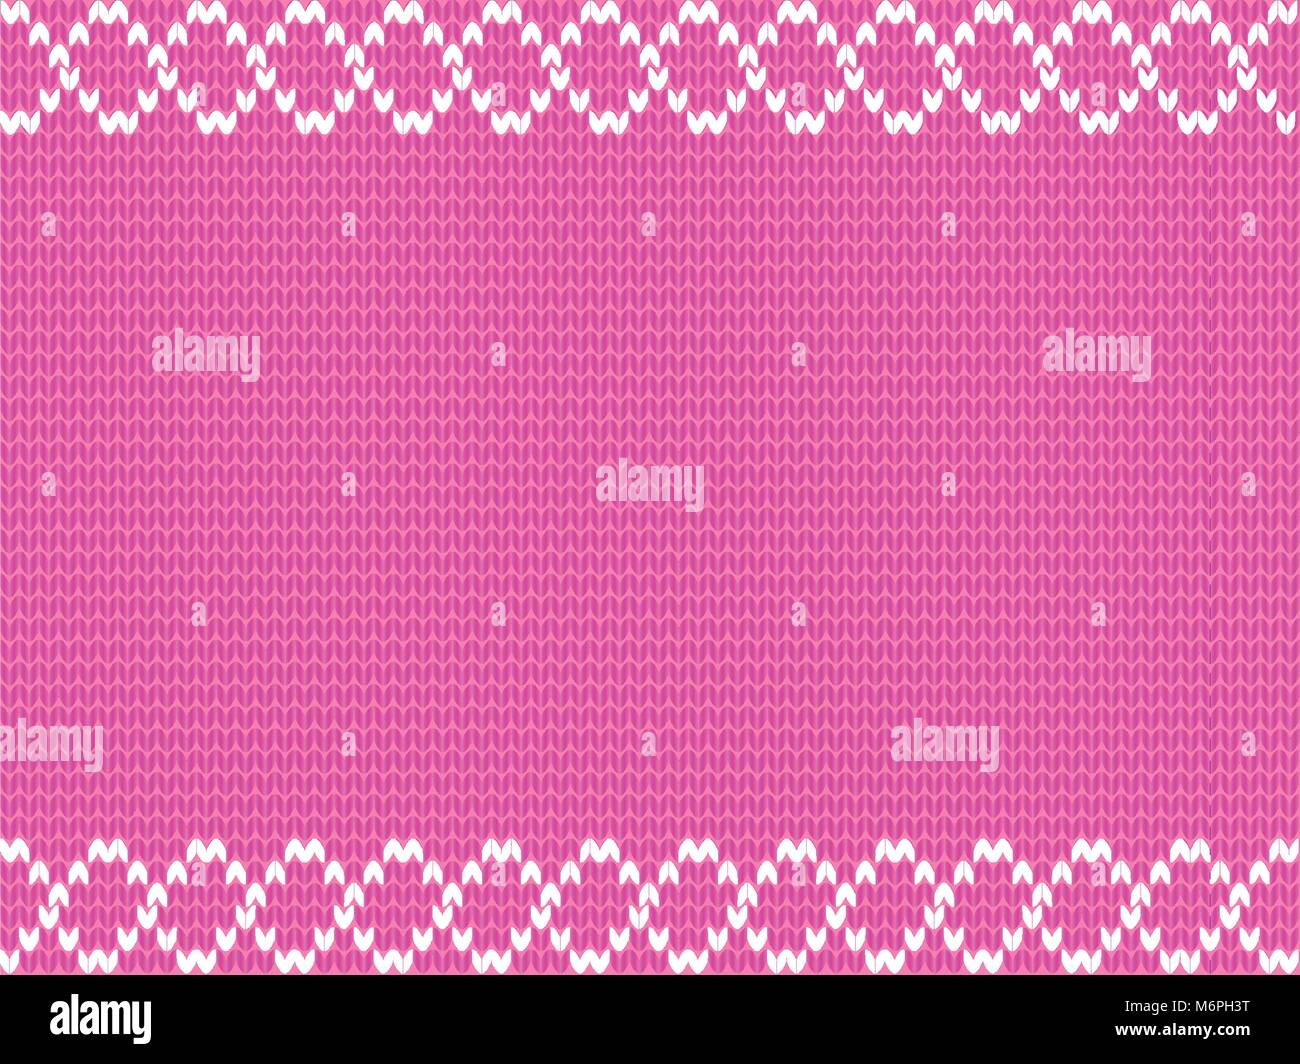 Cute baby pink knitting background framed with white weavy pattern ...